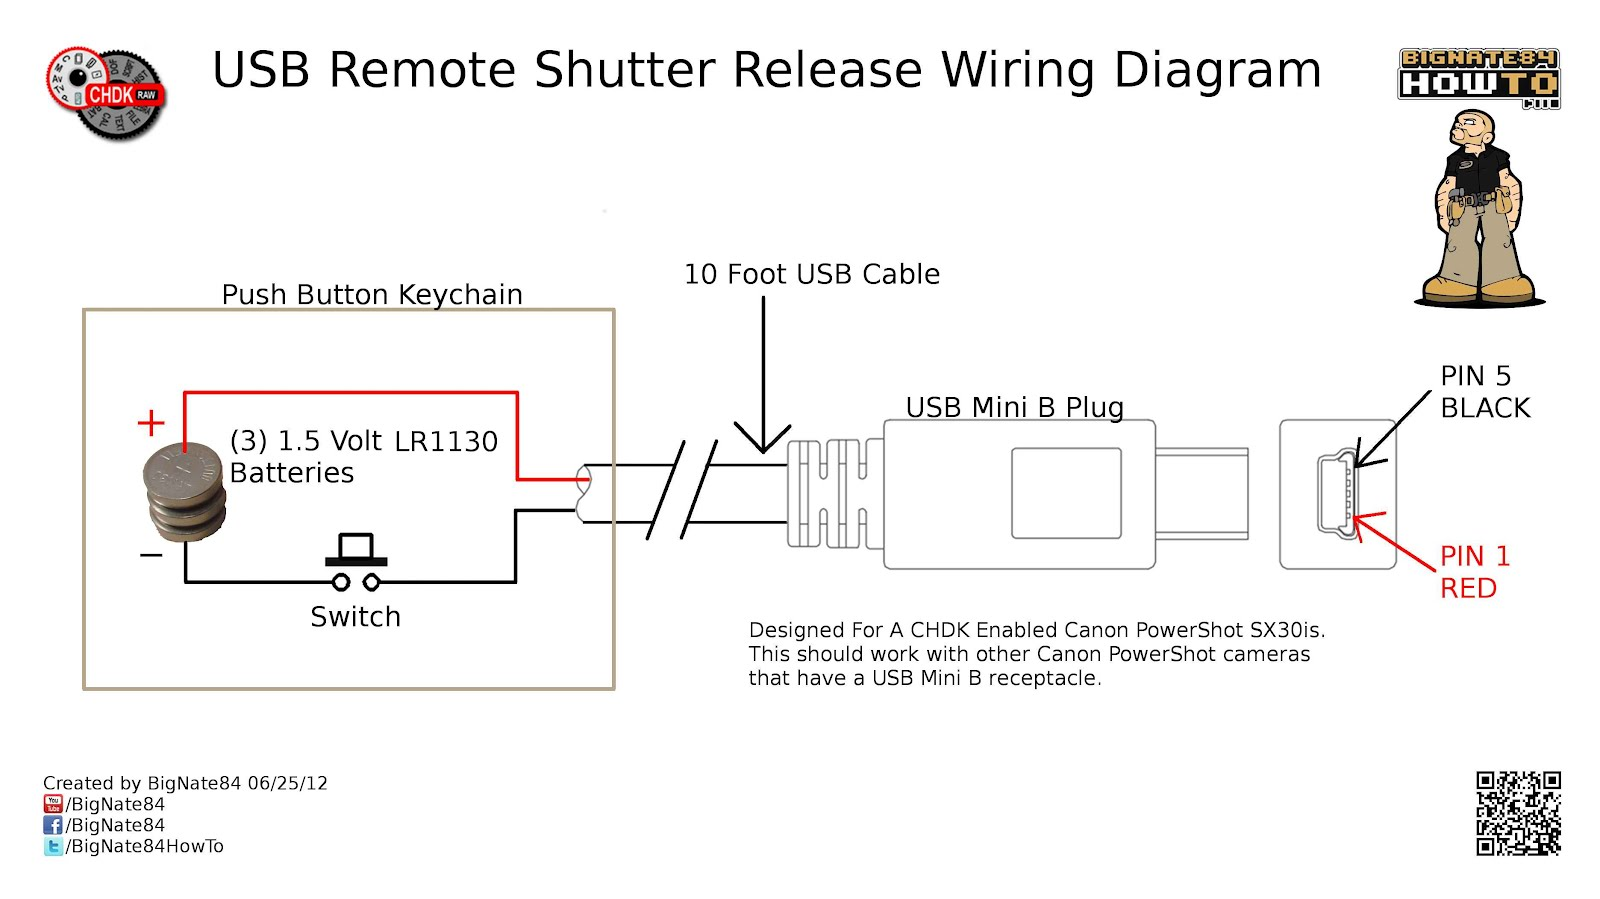 image - 0001 usb remote shutter wiring diagram -1.jpeg ... usb wires diagram three way switch 2 wires diagram